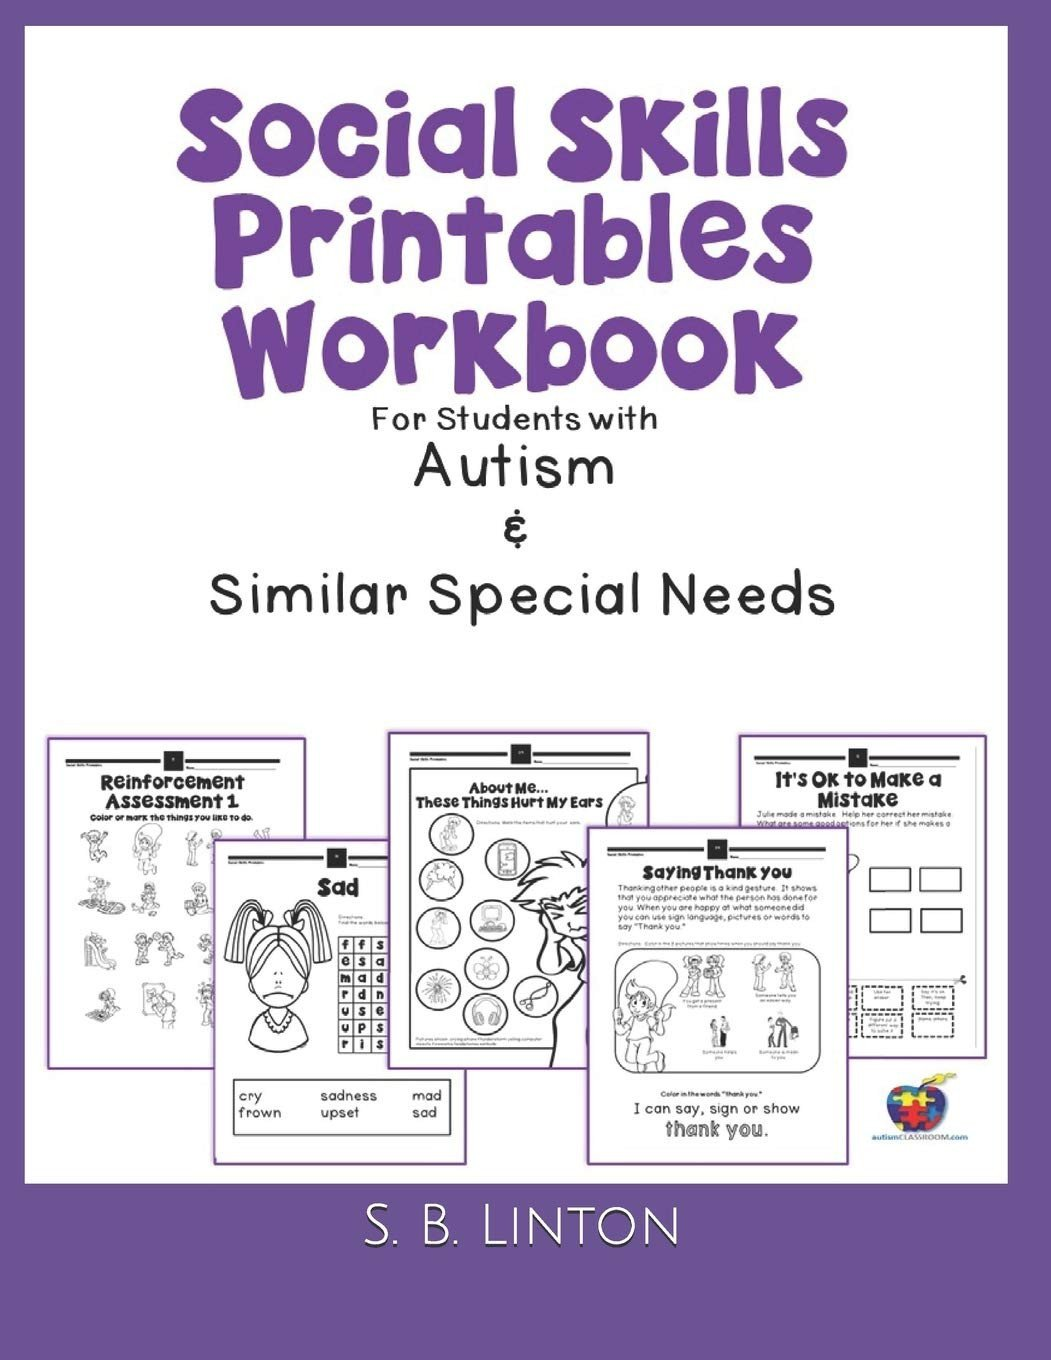 Social Skills Worksheets for Children social Skills Printables Workbook for Students with Autism